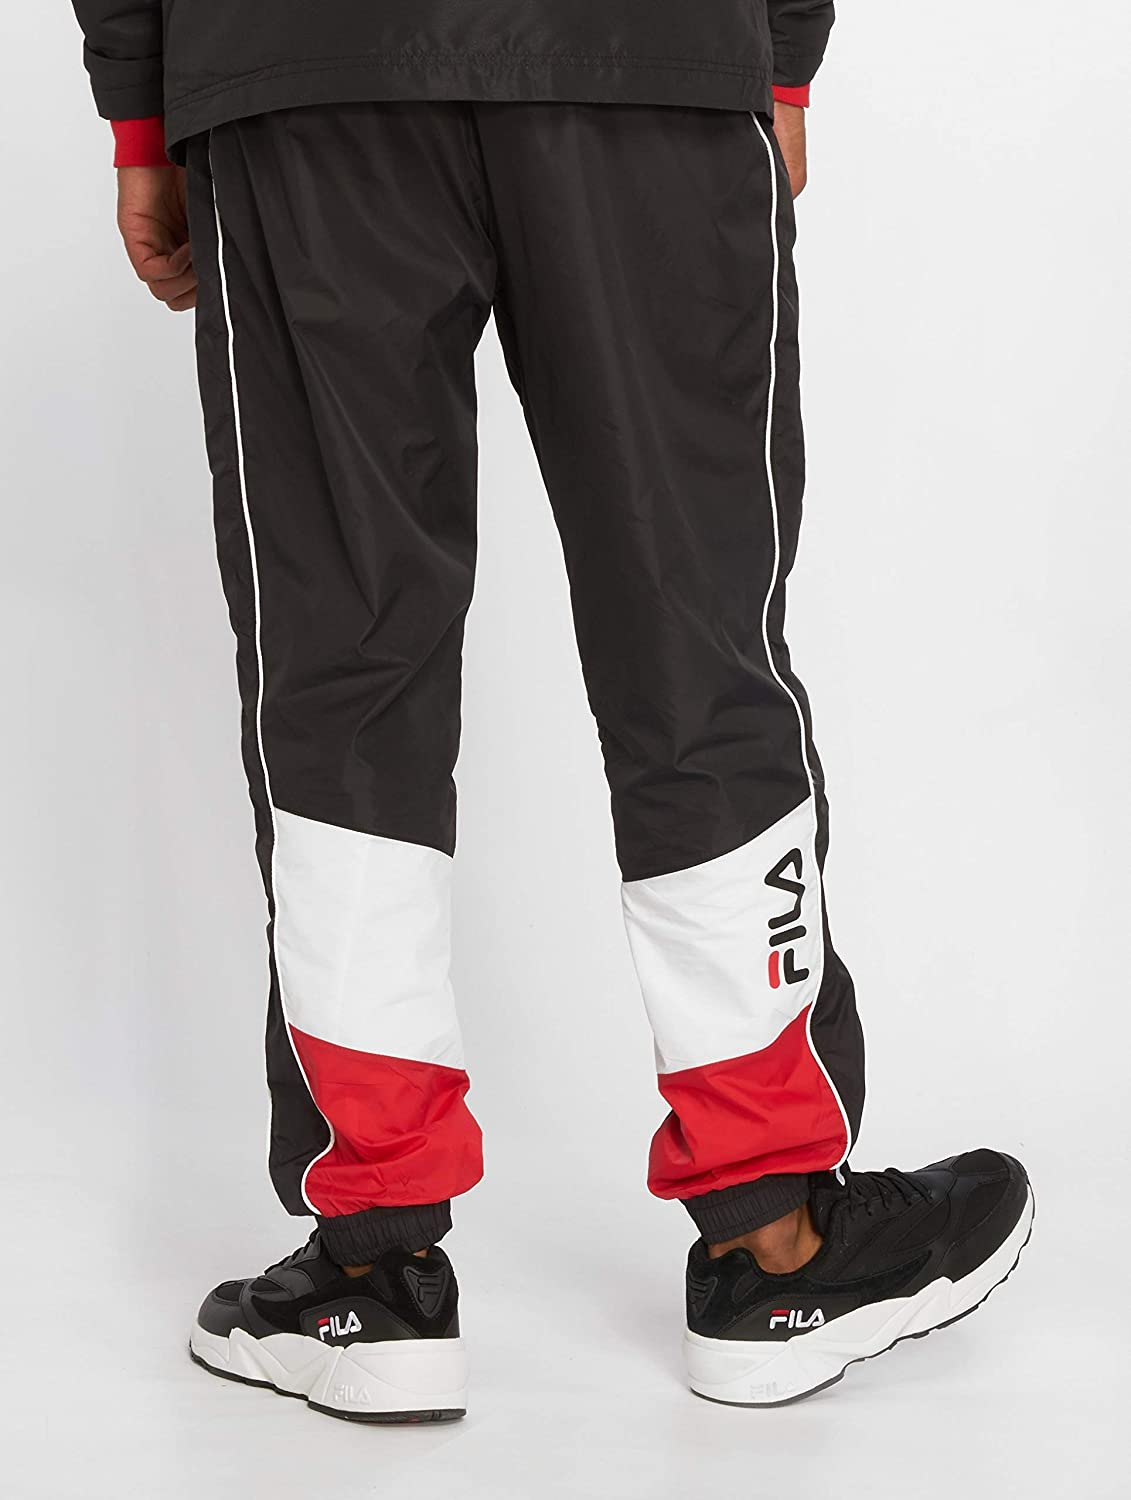 9c842b4a87ce3 Fila Pants Talmon Woven Black XL (X-Large): Amazon.com.au: Fashion